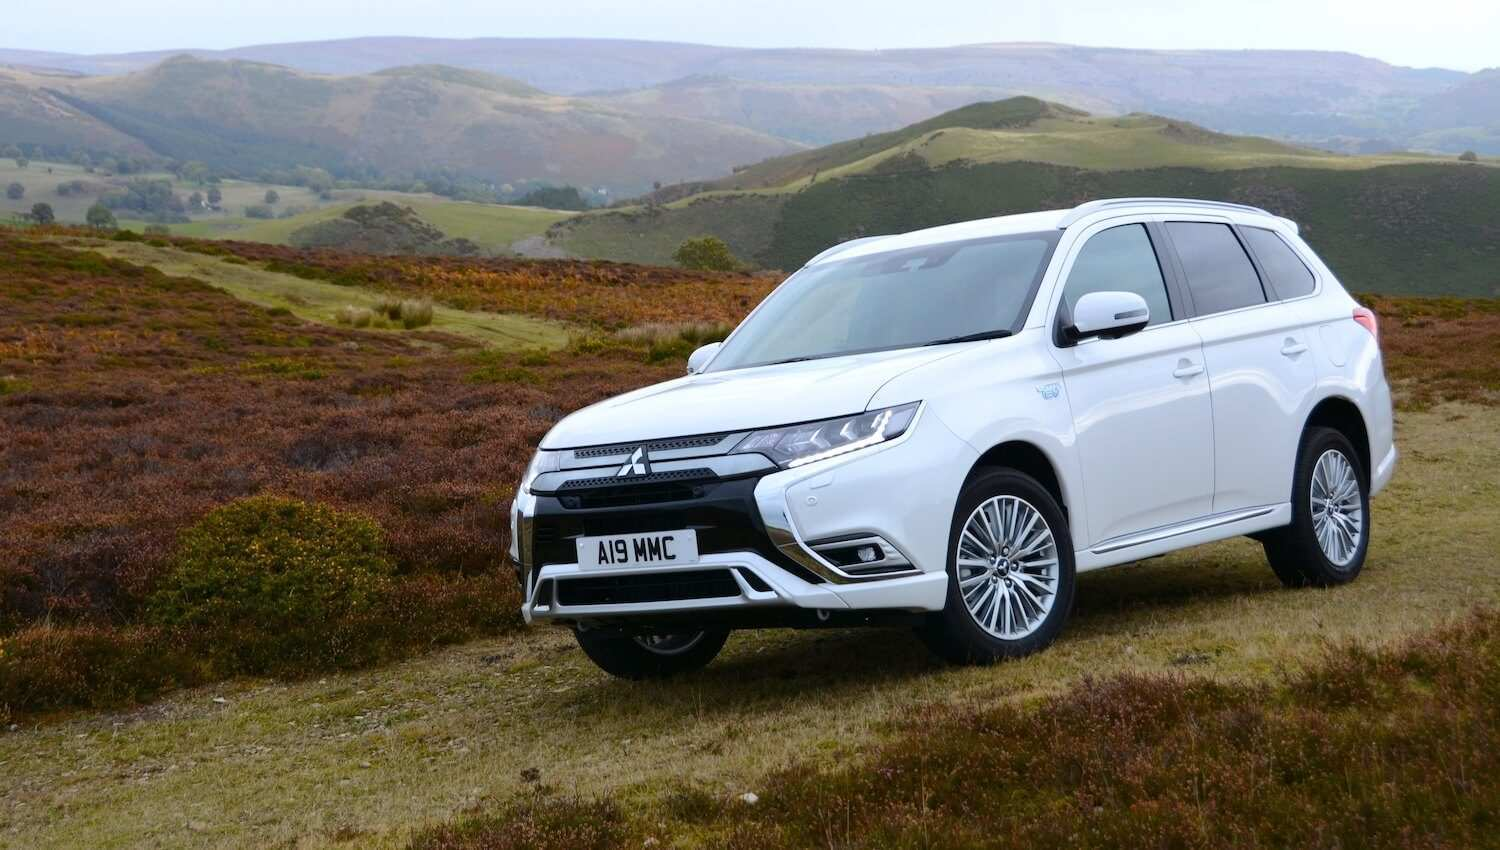 79 A 2019 Mitsubishi Outlander Phev Review Spesification